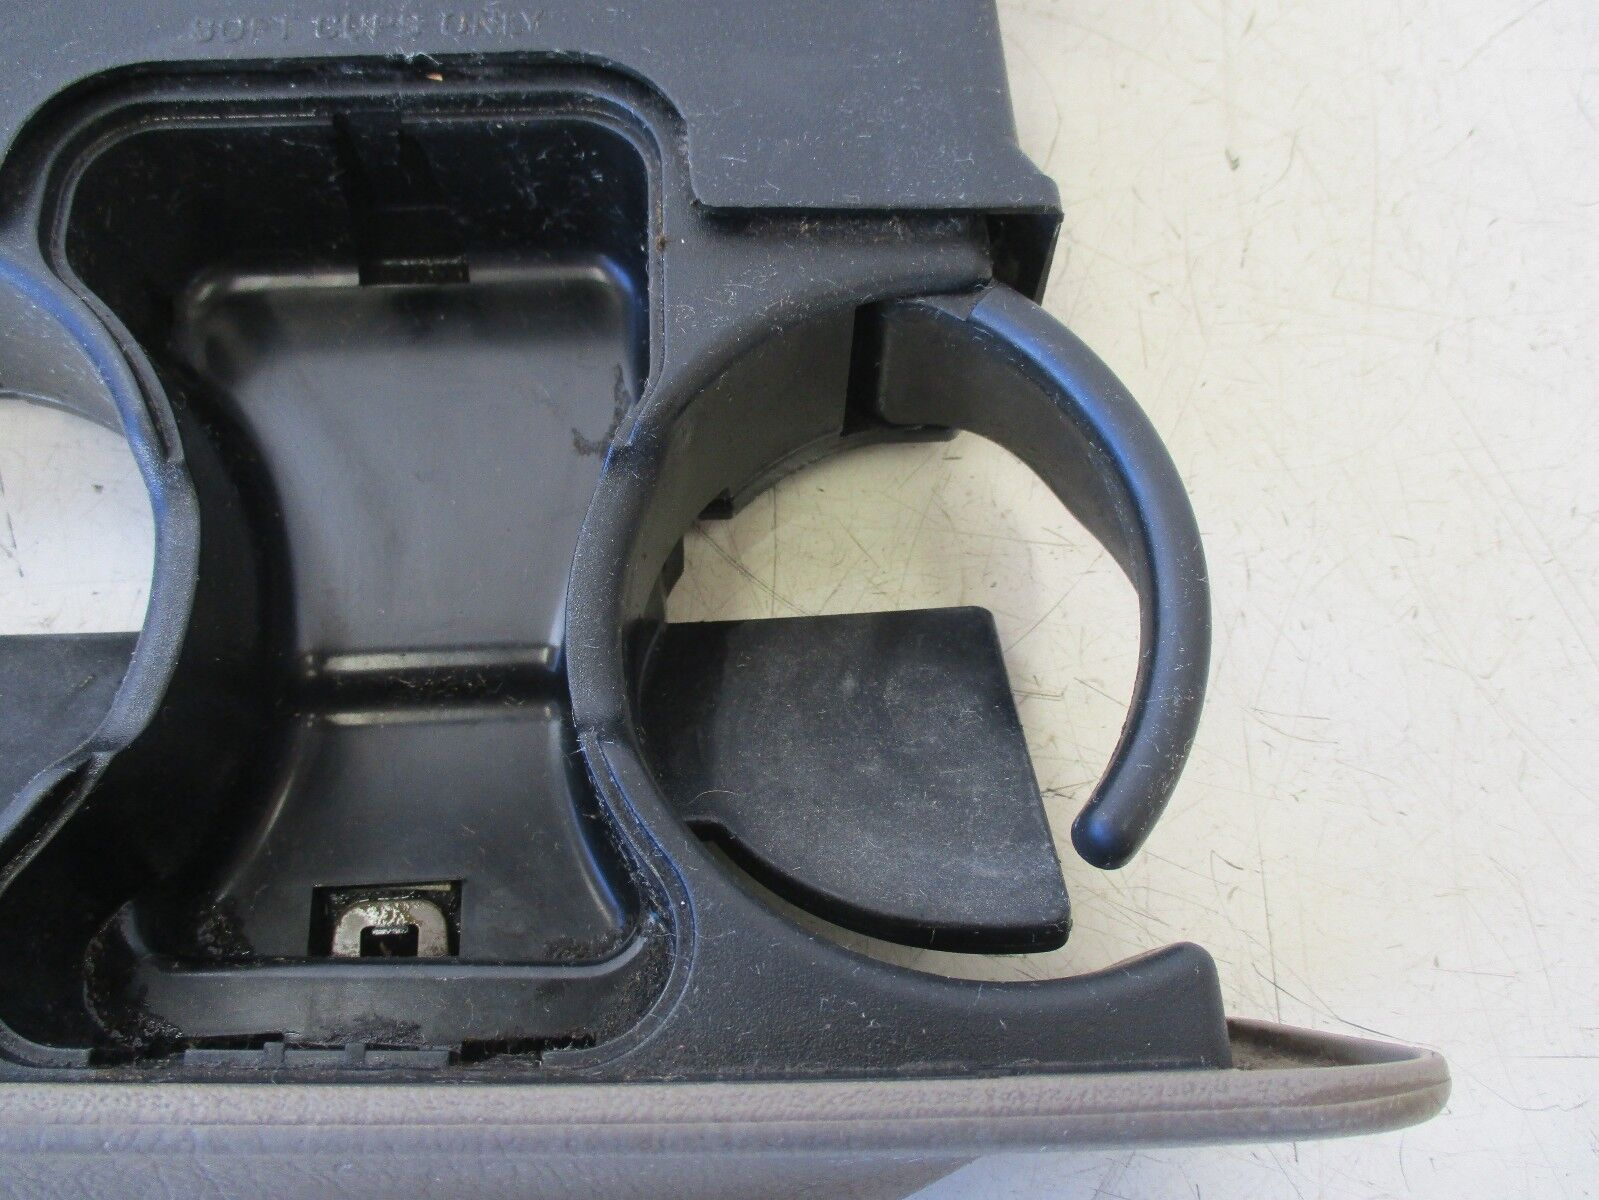 2001 ford f2150 sd crew cab oem interior dash mounted pull out cup holder